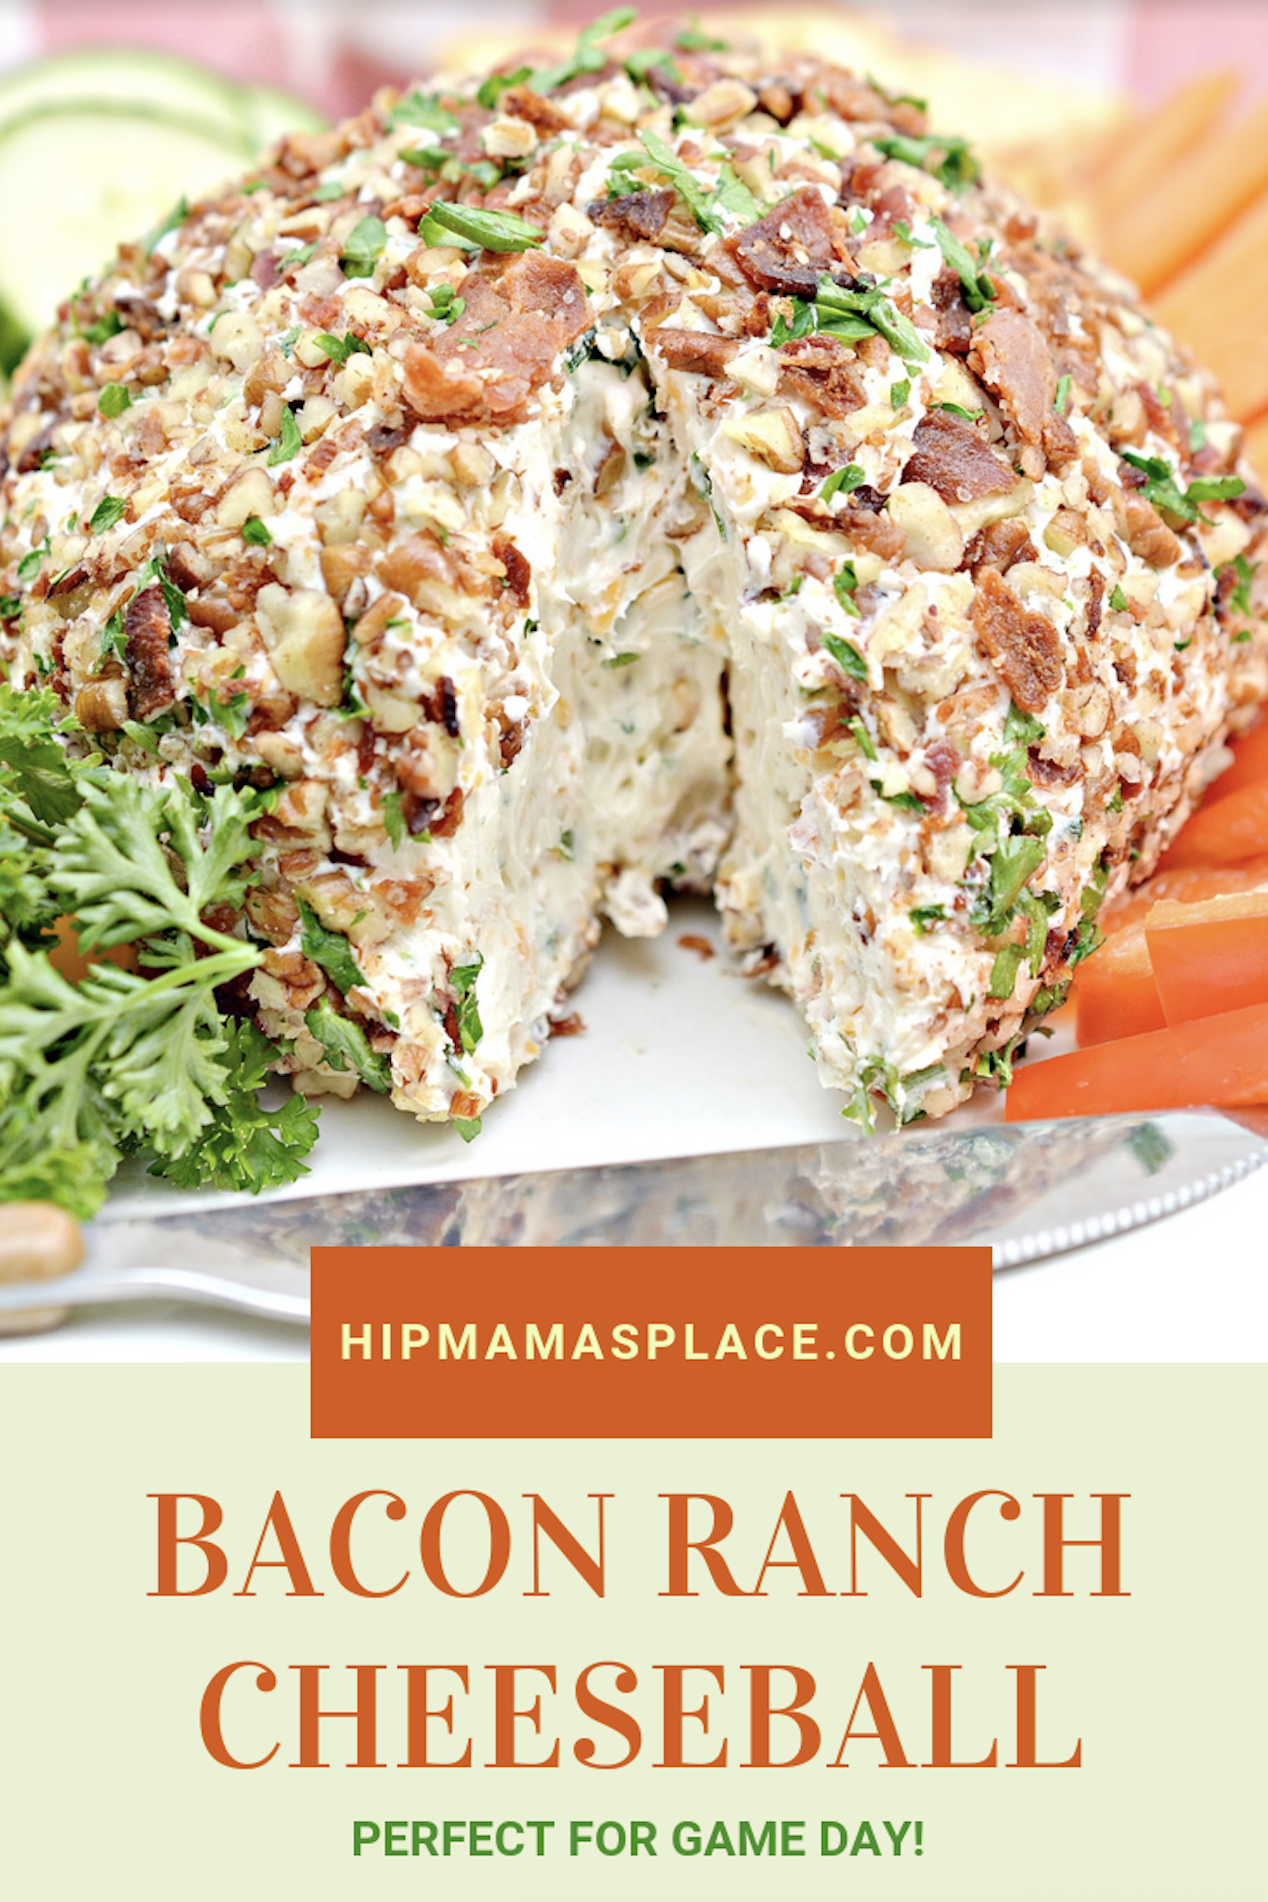 This Bacon Ranch Cheeseball recipe is the BEST EVER and is perfect for game day or any casual party! Plus, I got quick tips for hosting a game day party! #ad #Nexium24HrGameReady #CollectiveBias